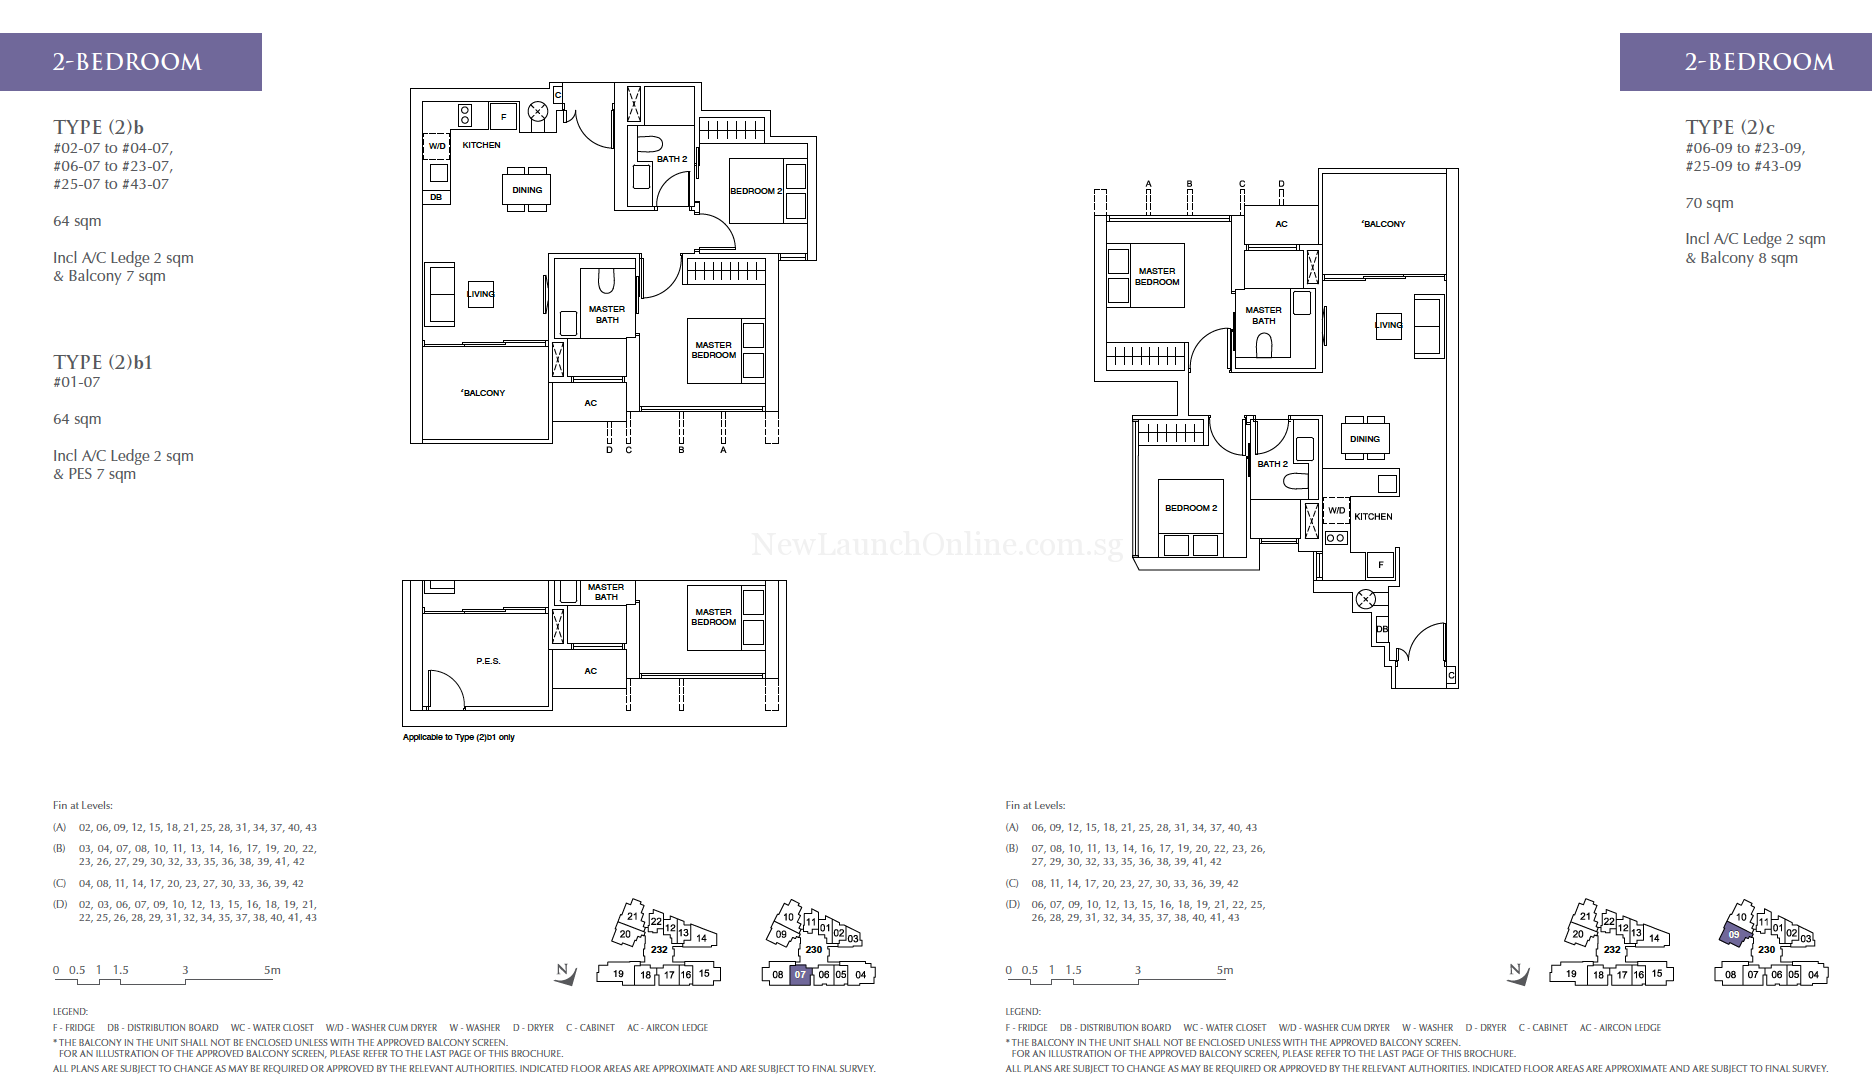 Commonwealth Towers 2 bedroom floor plan